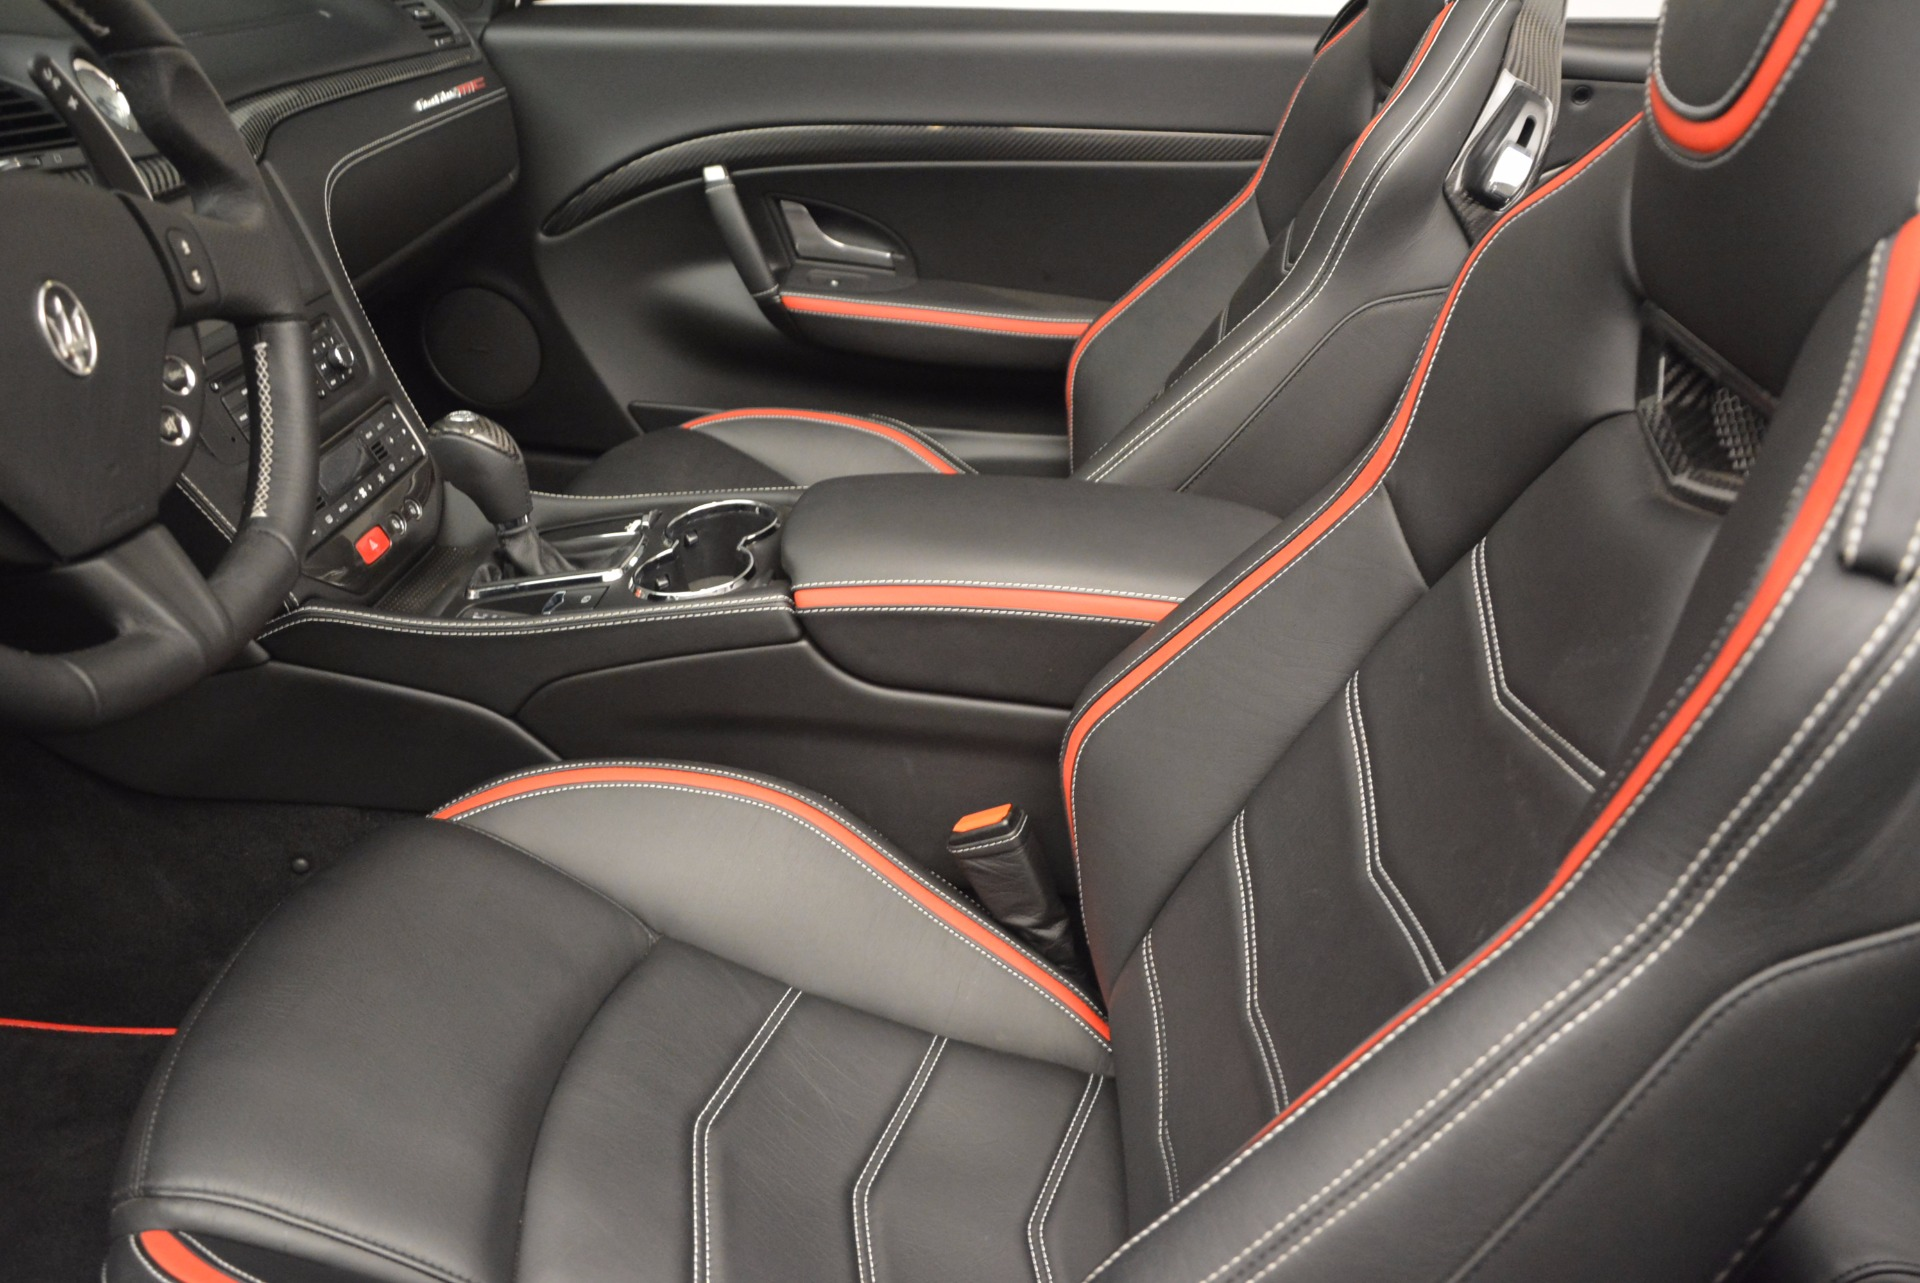 Used 2015 Maserati GranTurismo MC Centennial For Sale In Westport, CT 1107_p28